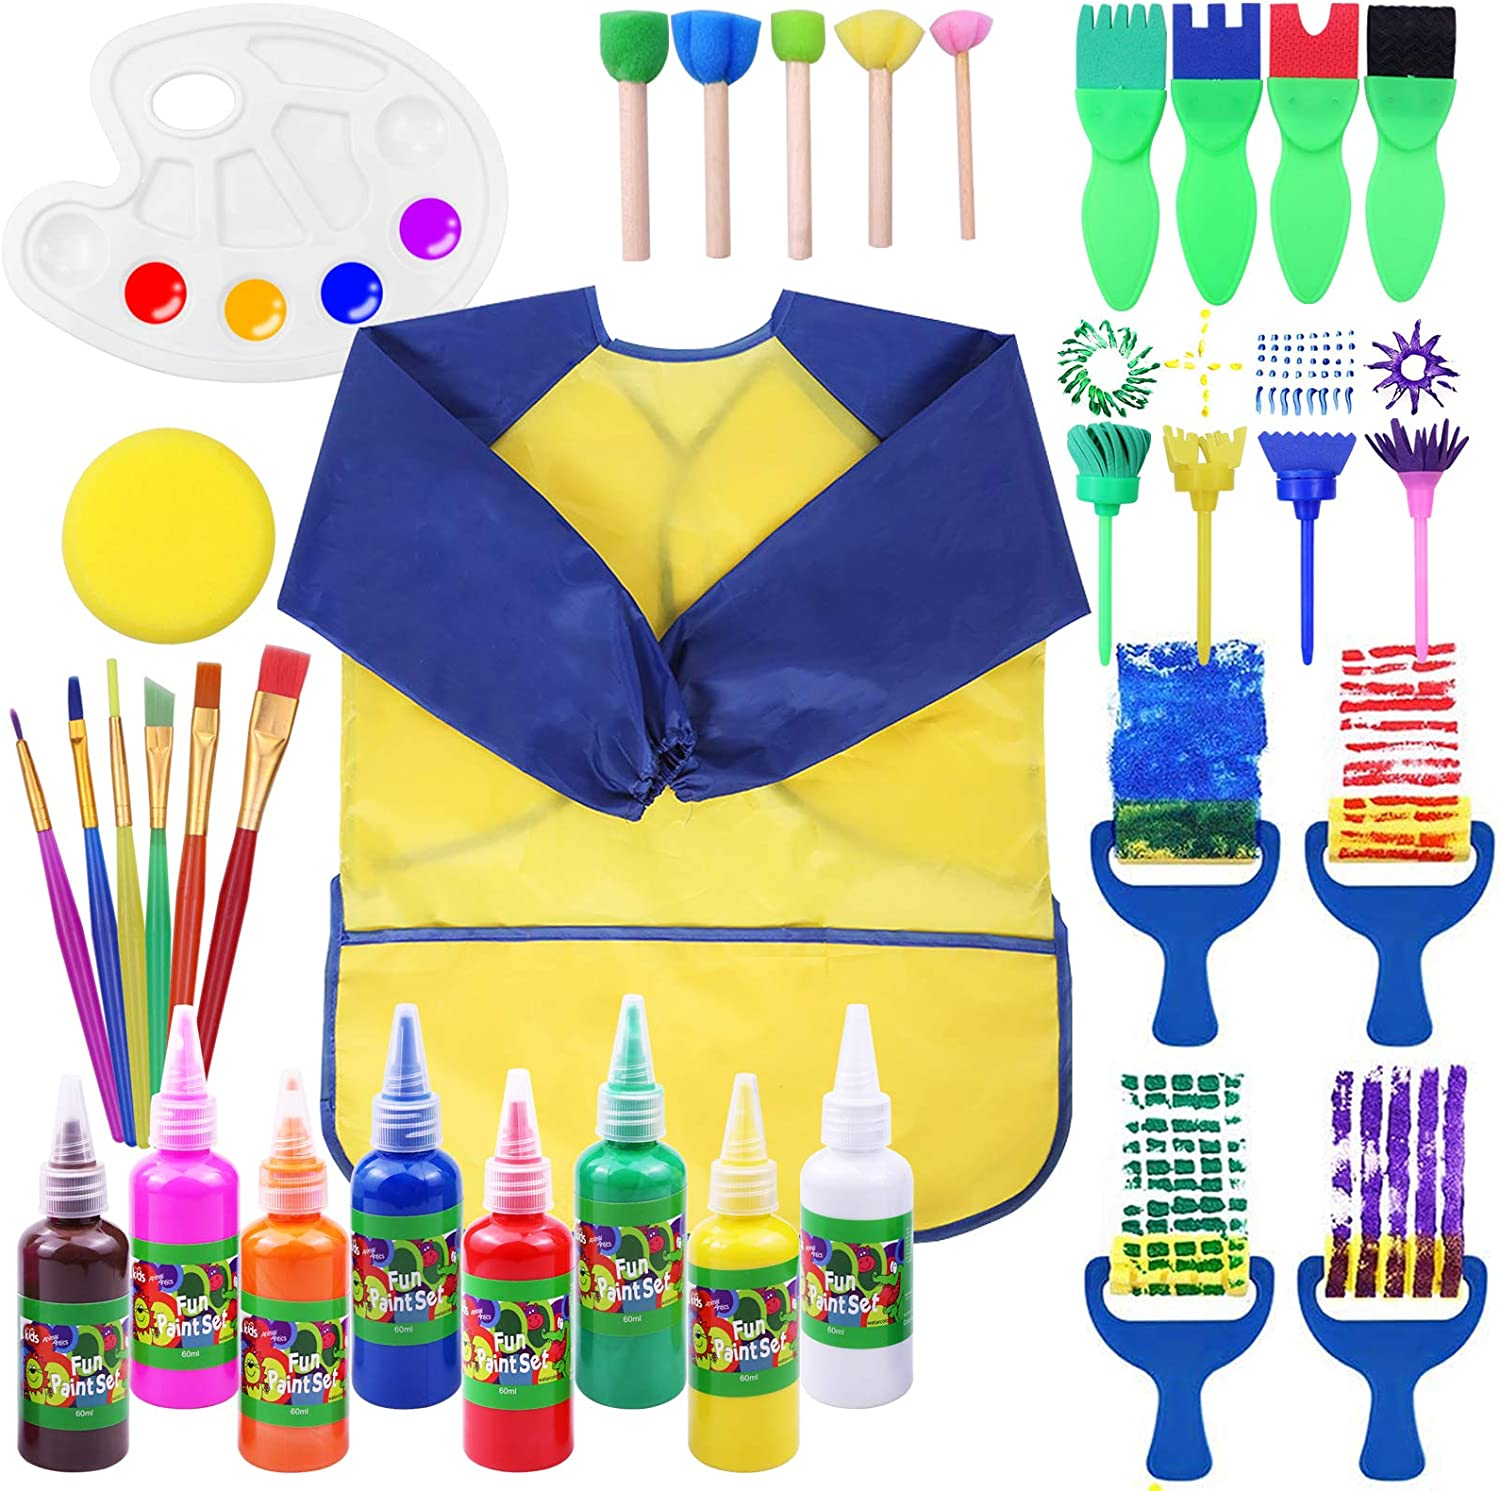 Early Learning Kids Paint Set, Twinbuys Washable Paint Set with Assorted Sponge Paint Brushes for Kids, Including 8 Finger Paint for Toddlers: Arts, Crafts & Sewing